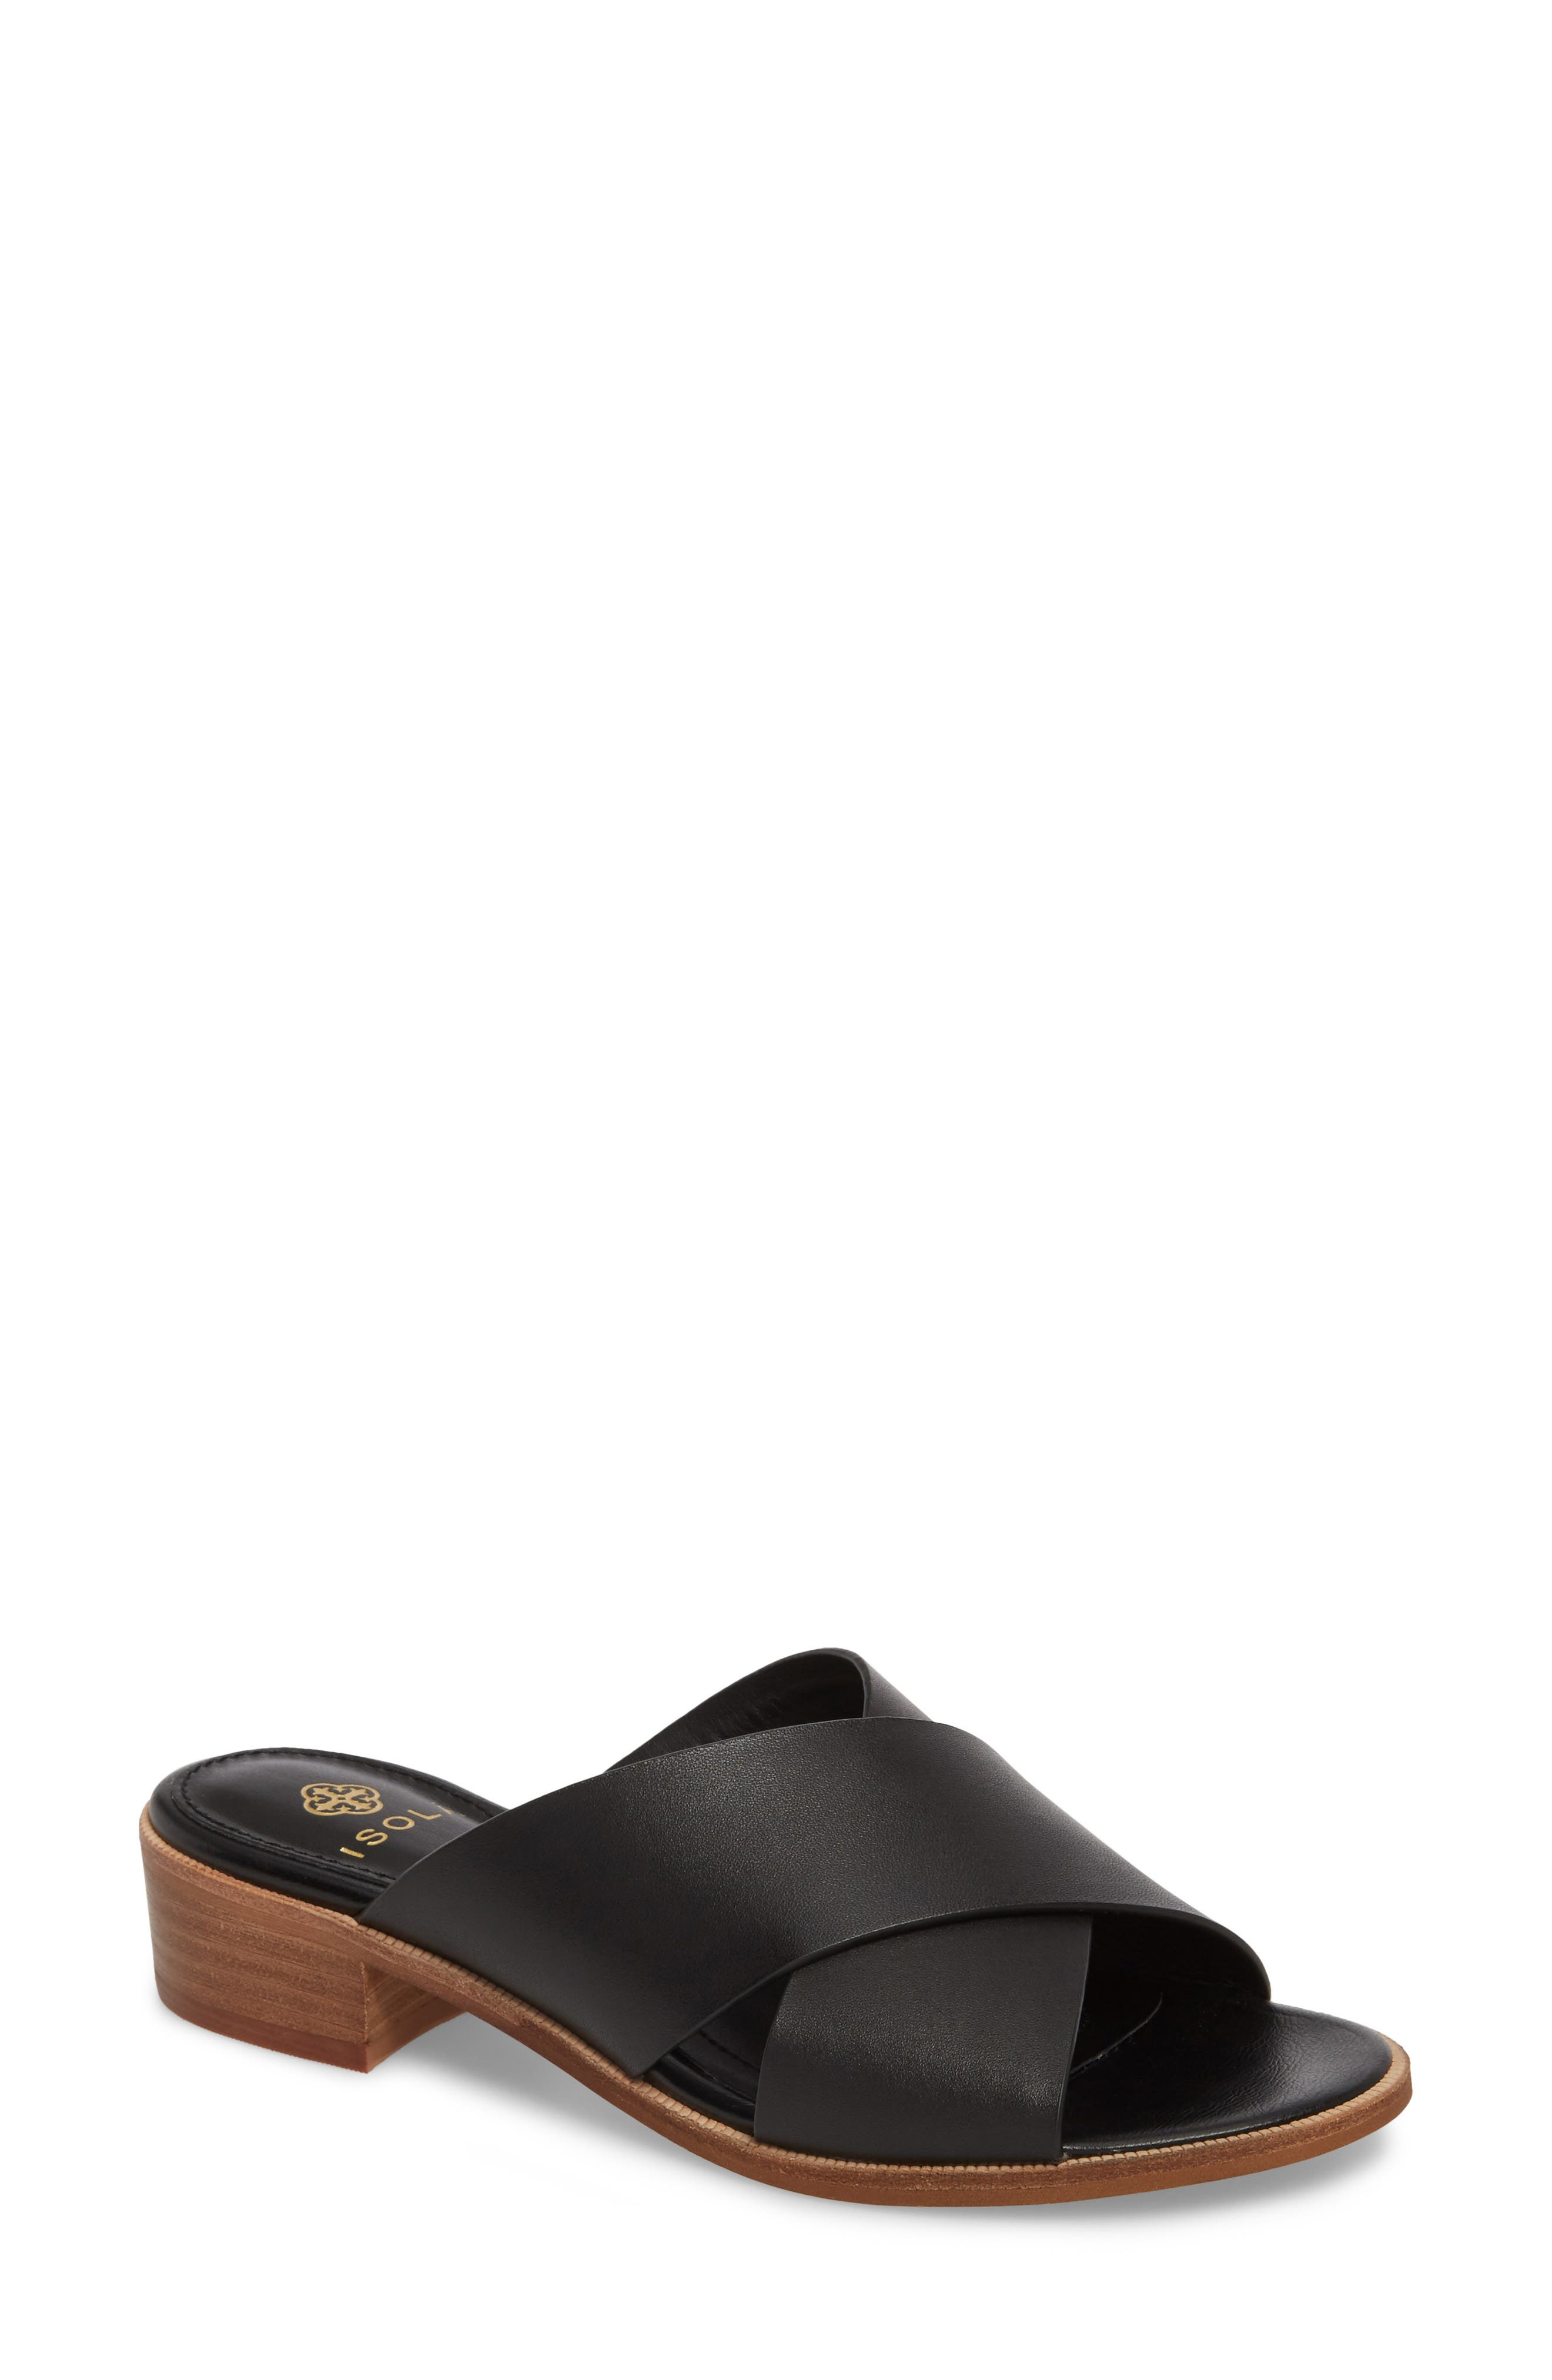 Isola Ginata Slide Sandal,                         Main,                         color, Black Leather